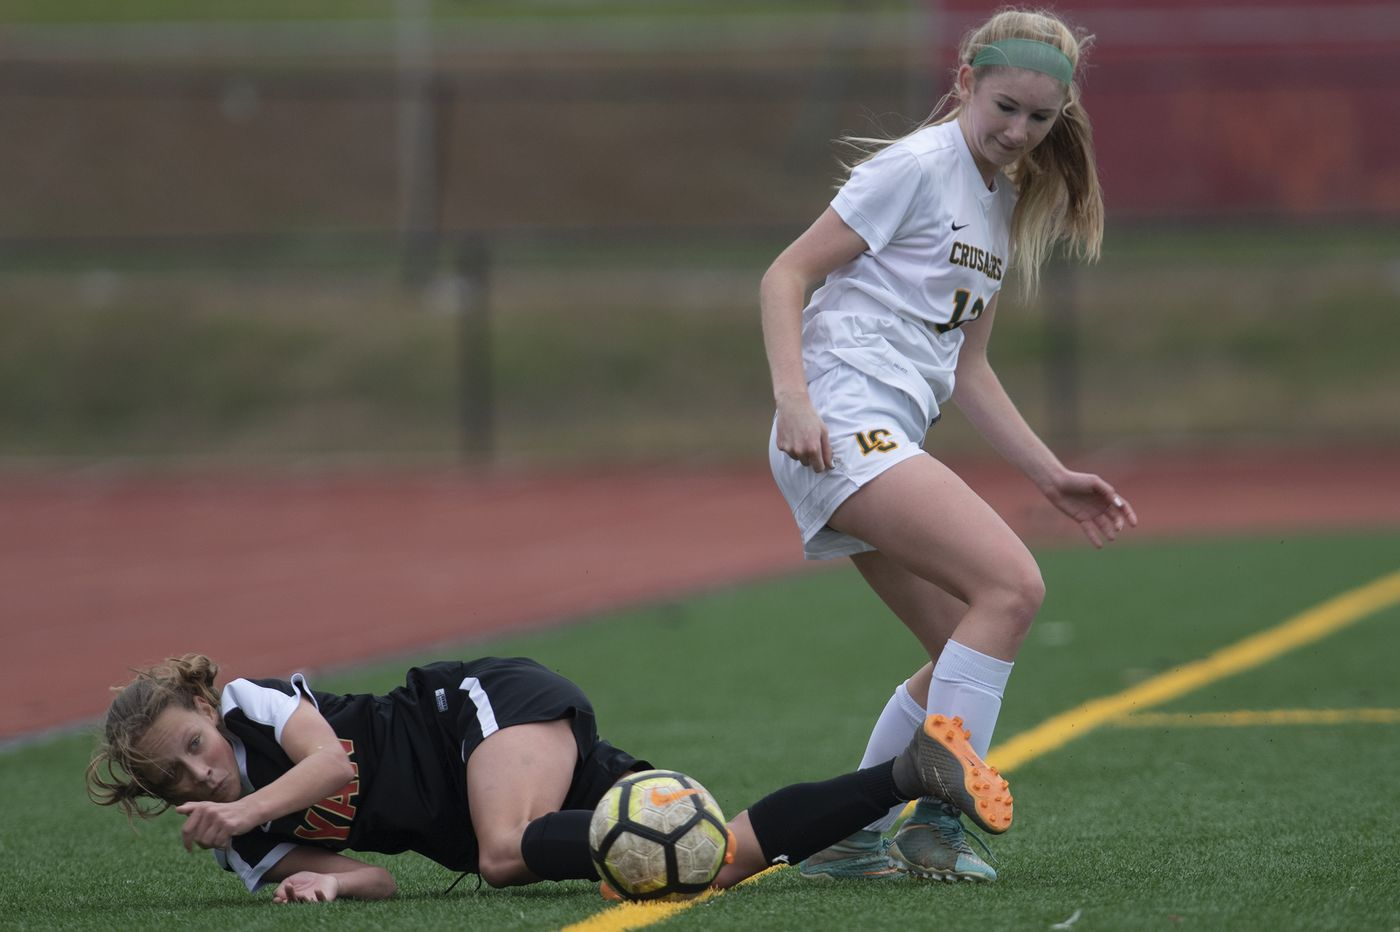 Pennsylvania state playoff preview: A full slate of soccer, field hockey, and volleyball